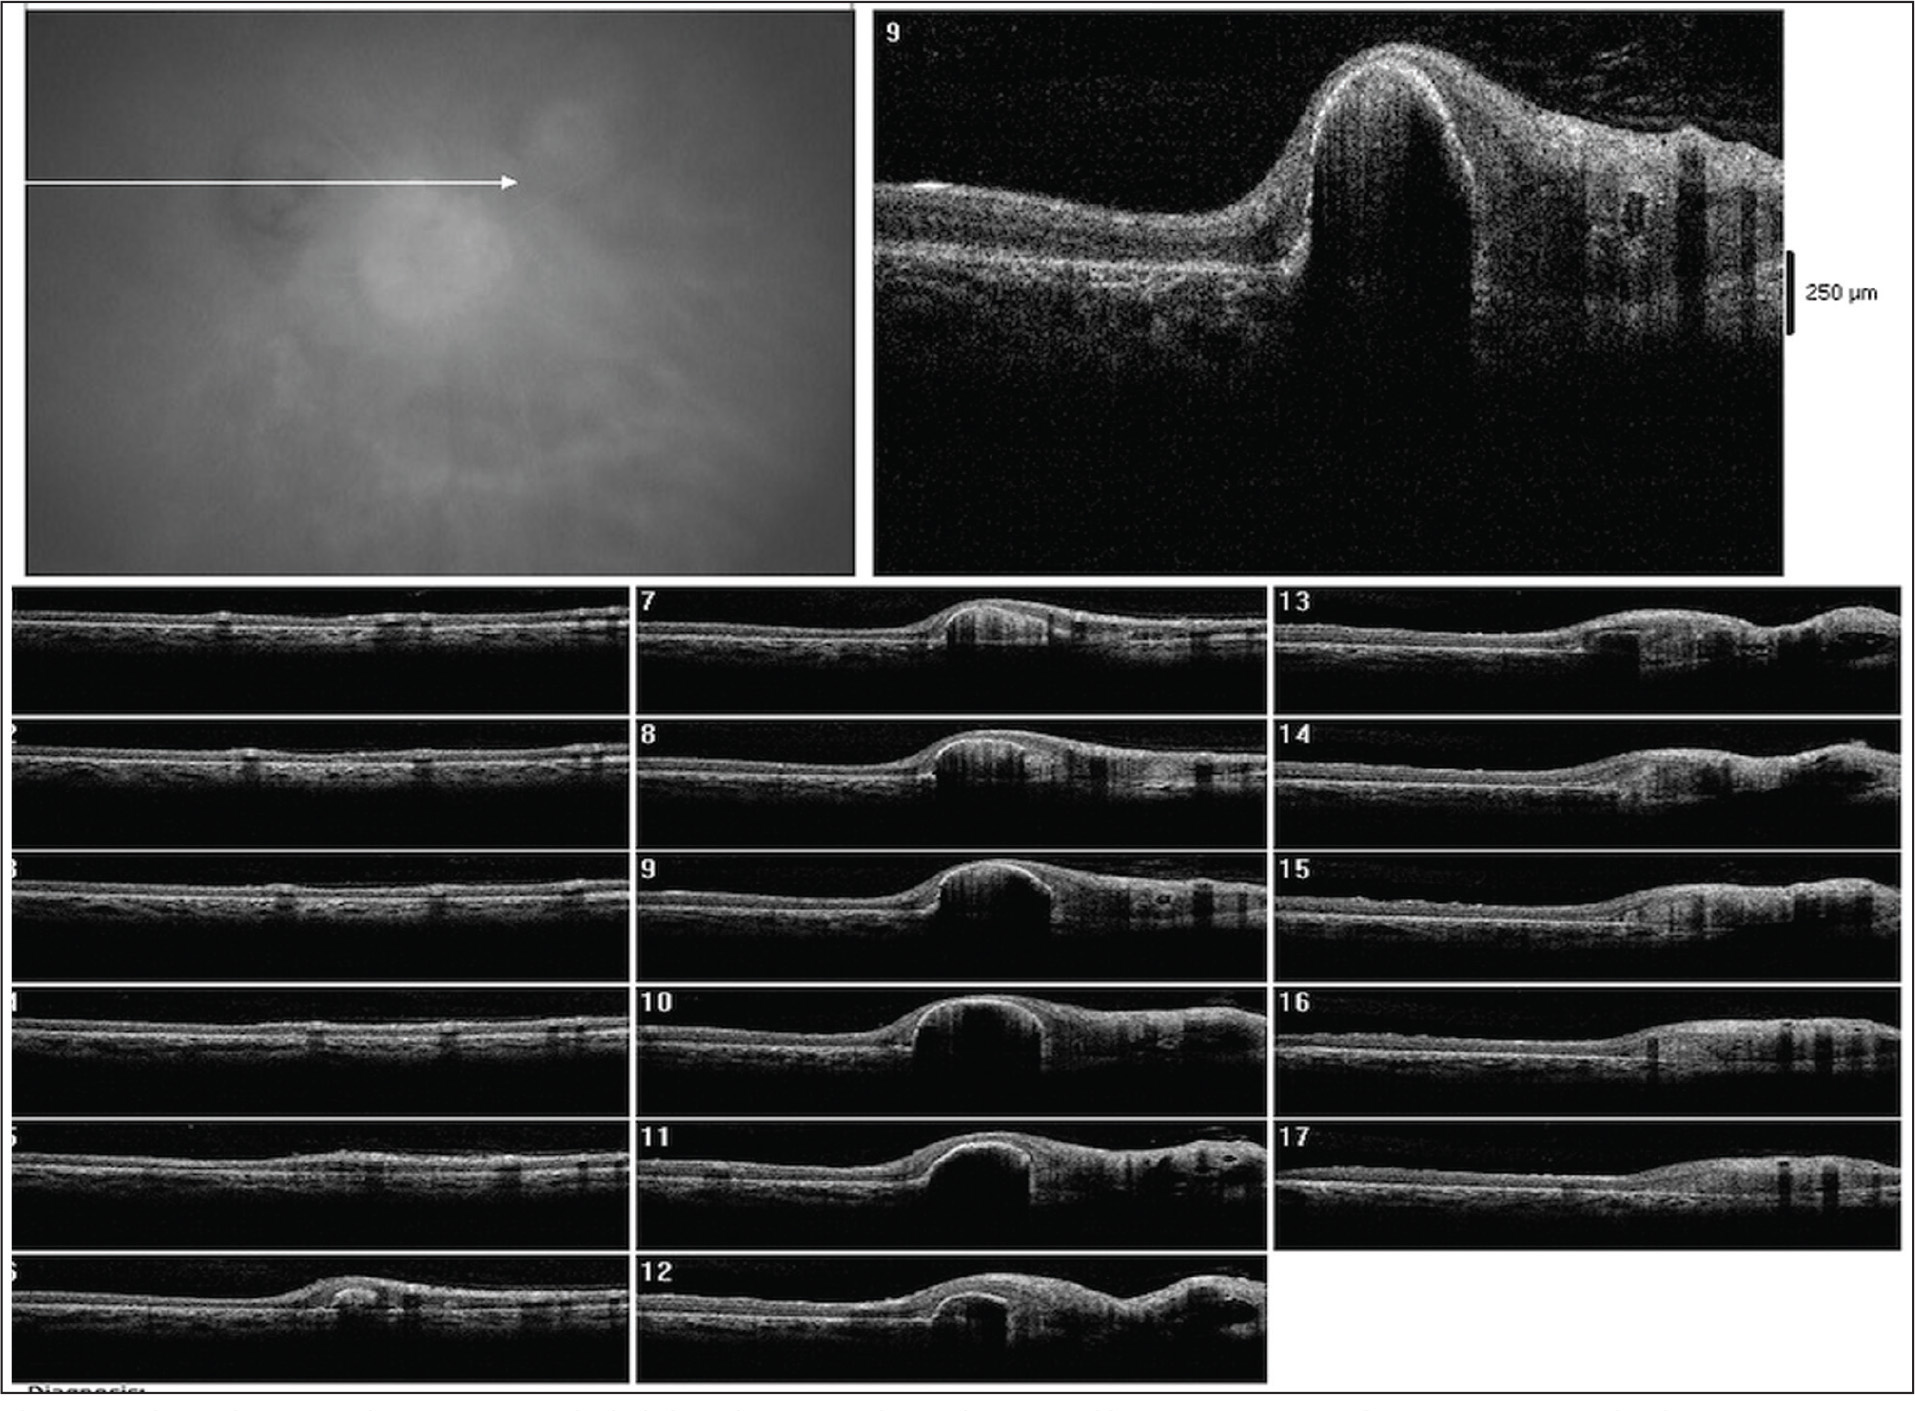 The right eye with pigment epithelial detachment with moderate and heterogeneous reflectivity on optical coherence tomography over the scar next to the papillary area 1 month following ranibizumab injection.